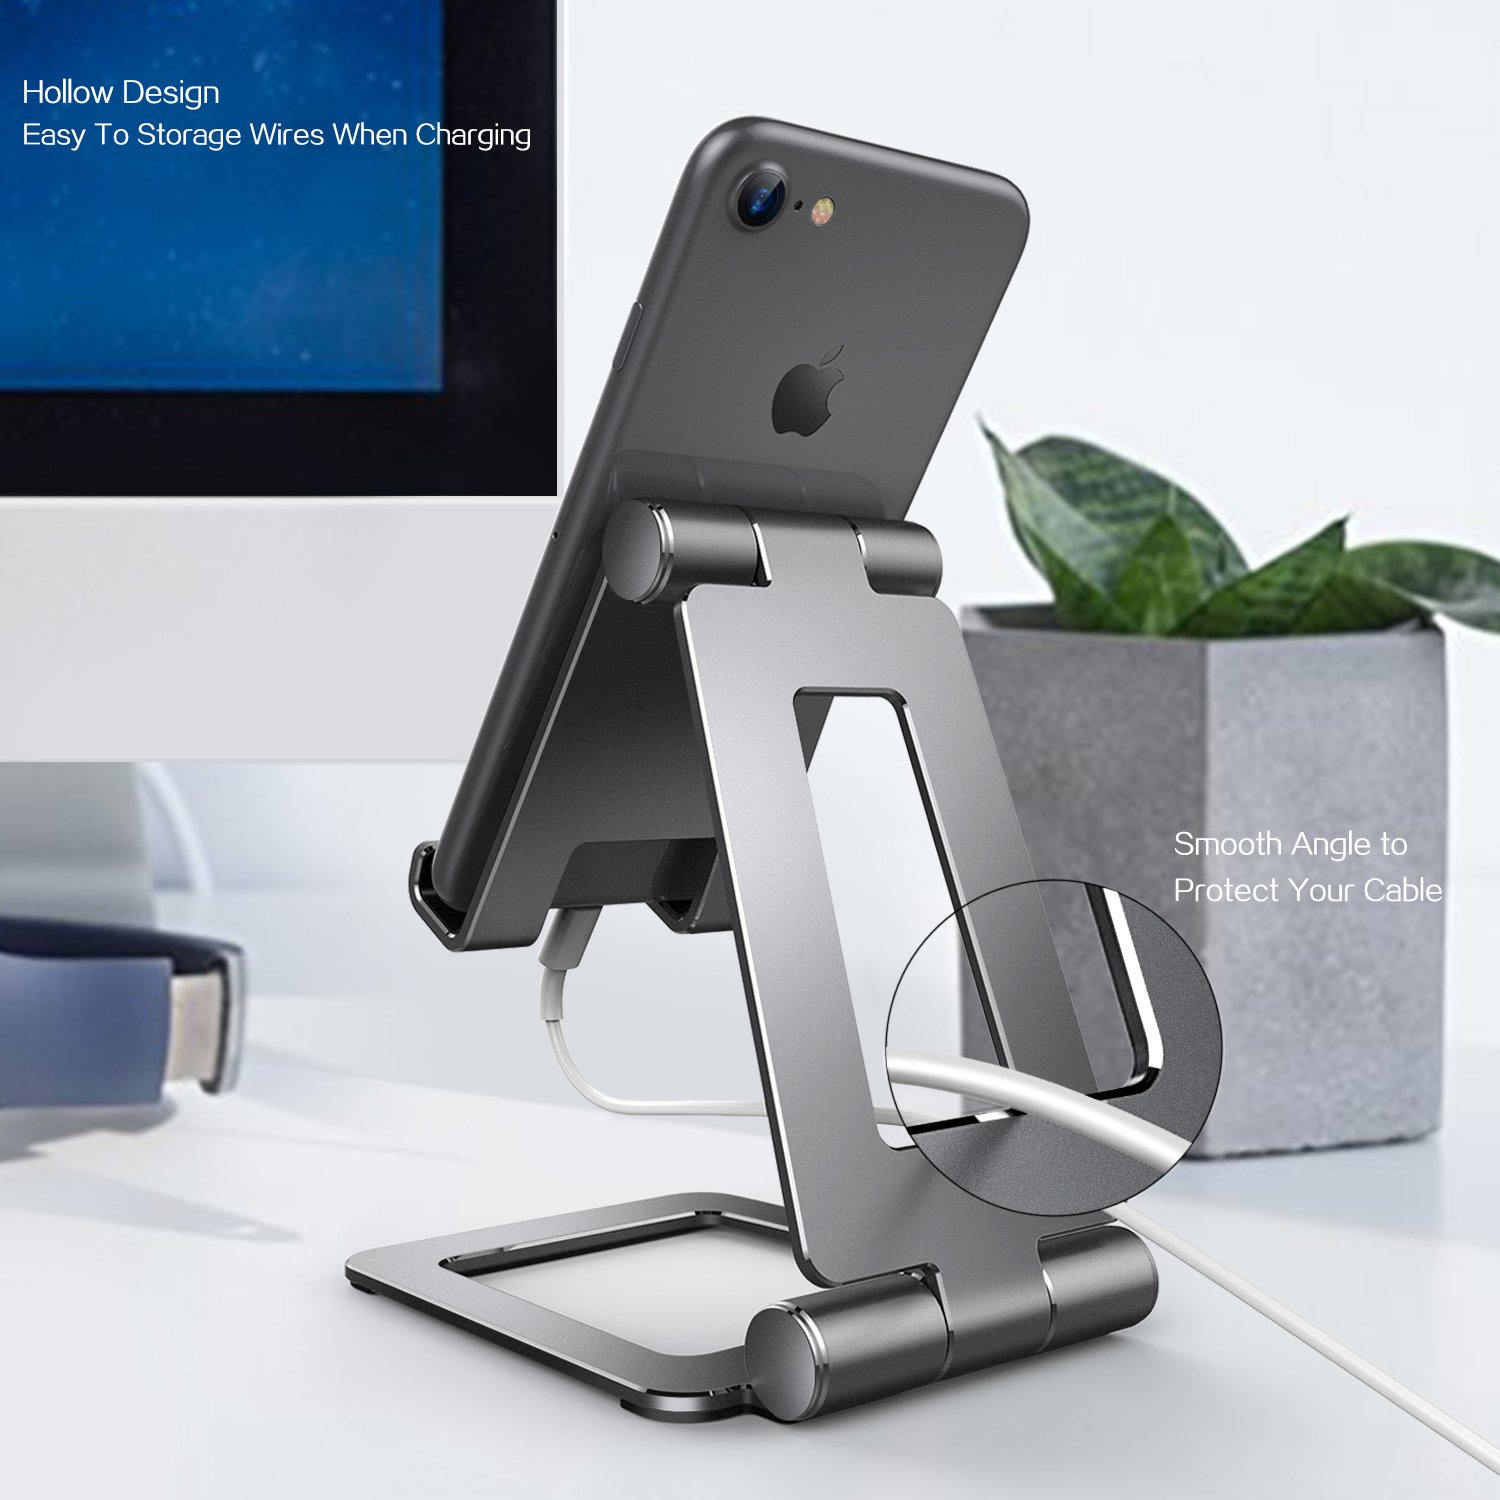 Adjustable iPad Stand, Tablet Stand Holders, Cell Phone Stands, iPhone Stand, Nintendo Switch Stand, iPad Pro Stand, iPad Mini Stands and Holders for Desk (4-13 inch) by Hi-Tech Wireless (Image #7)